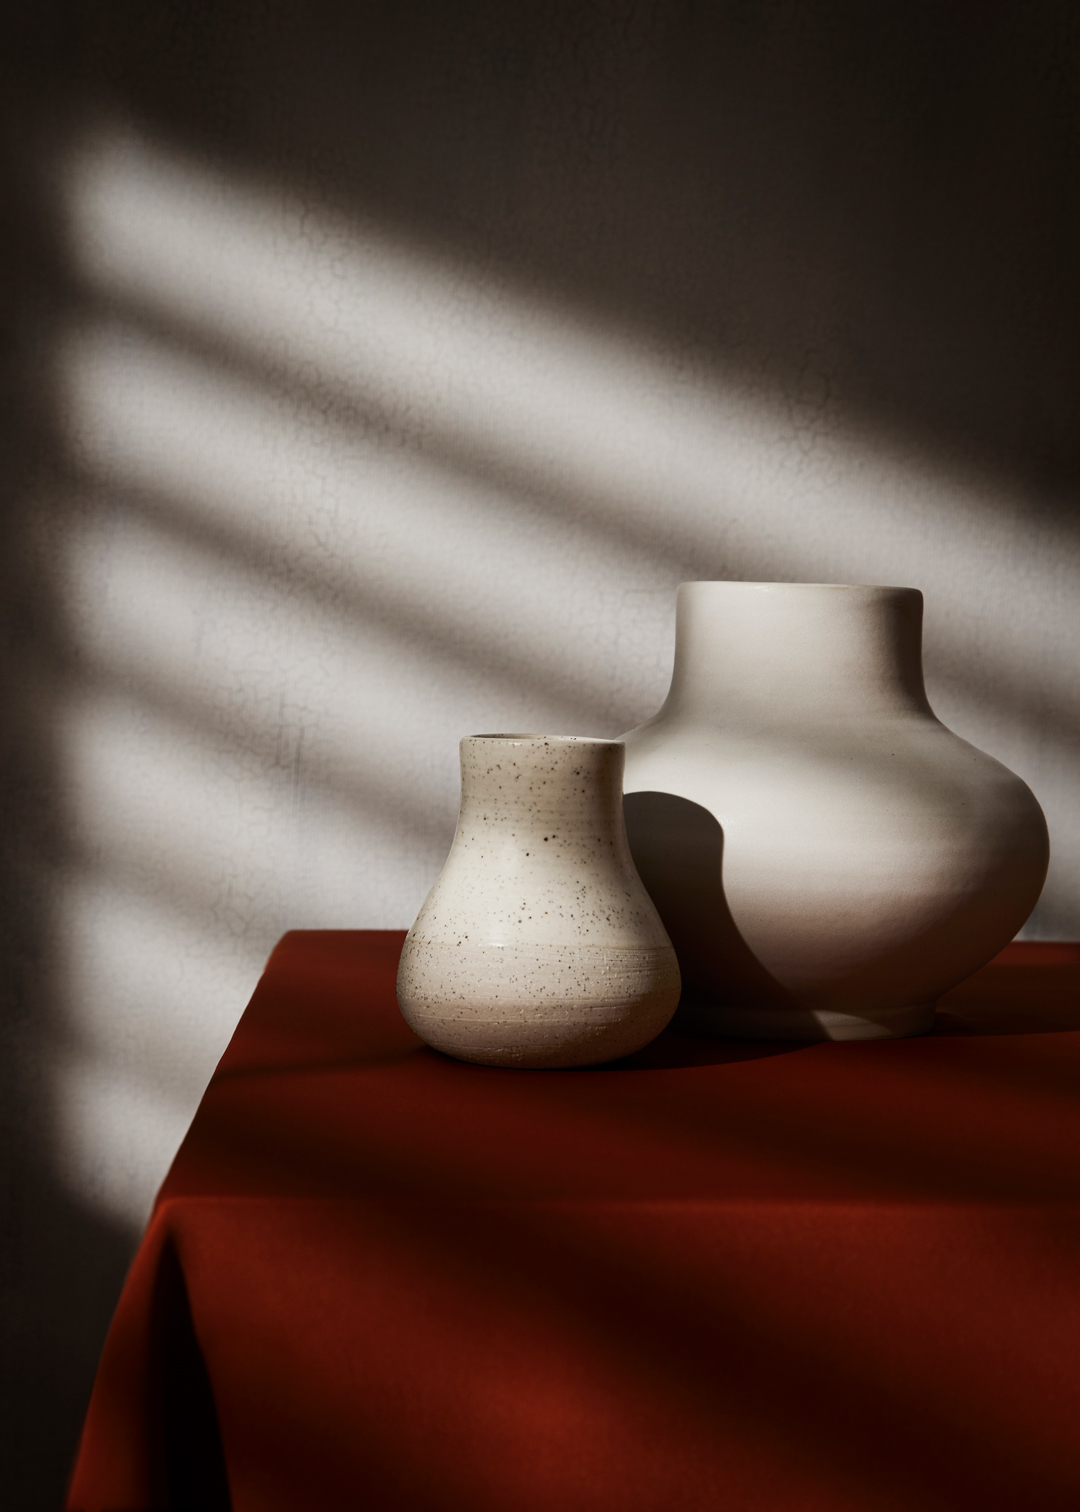 minimal pottery still life photography on table